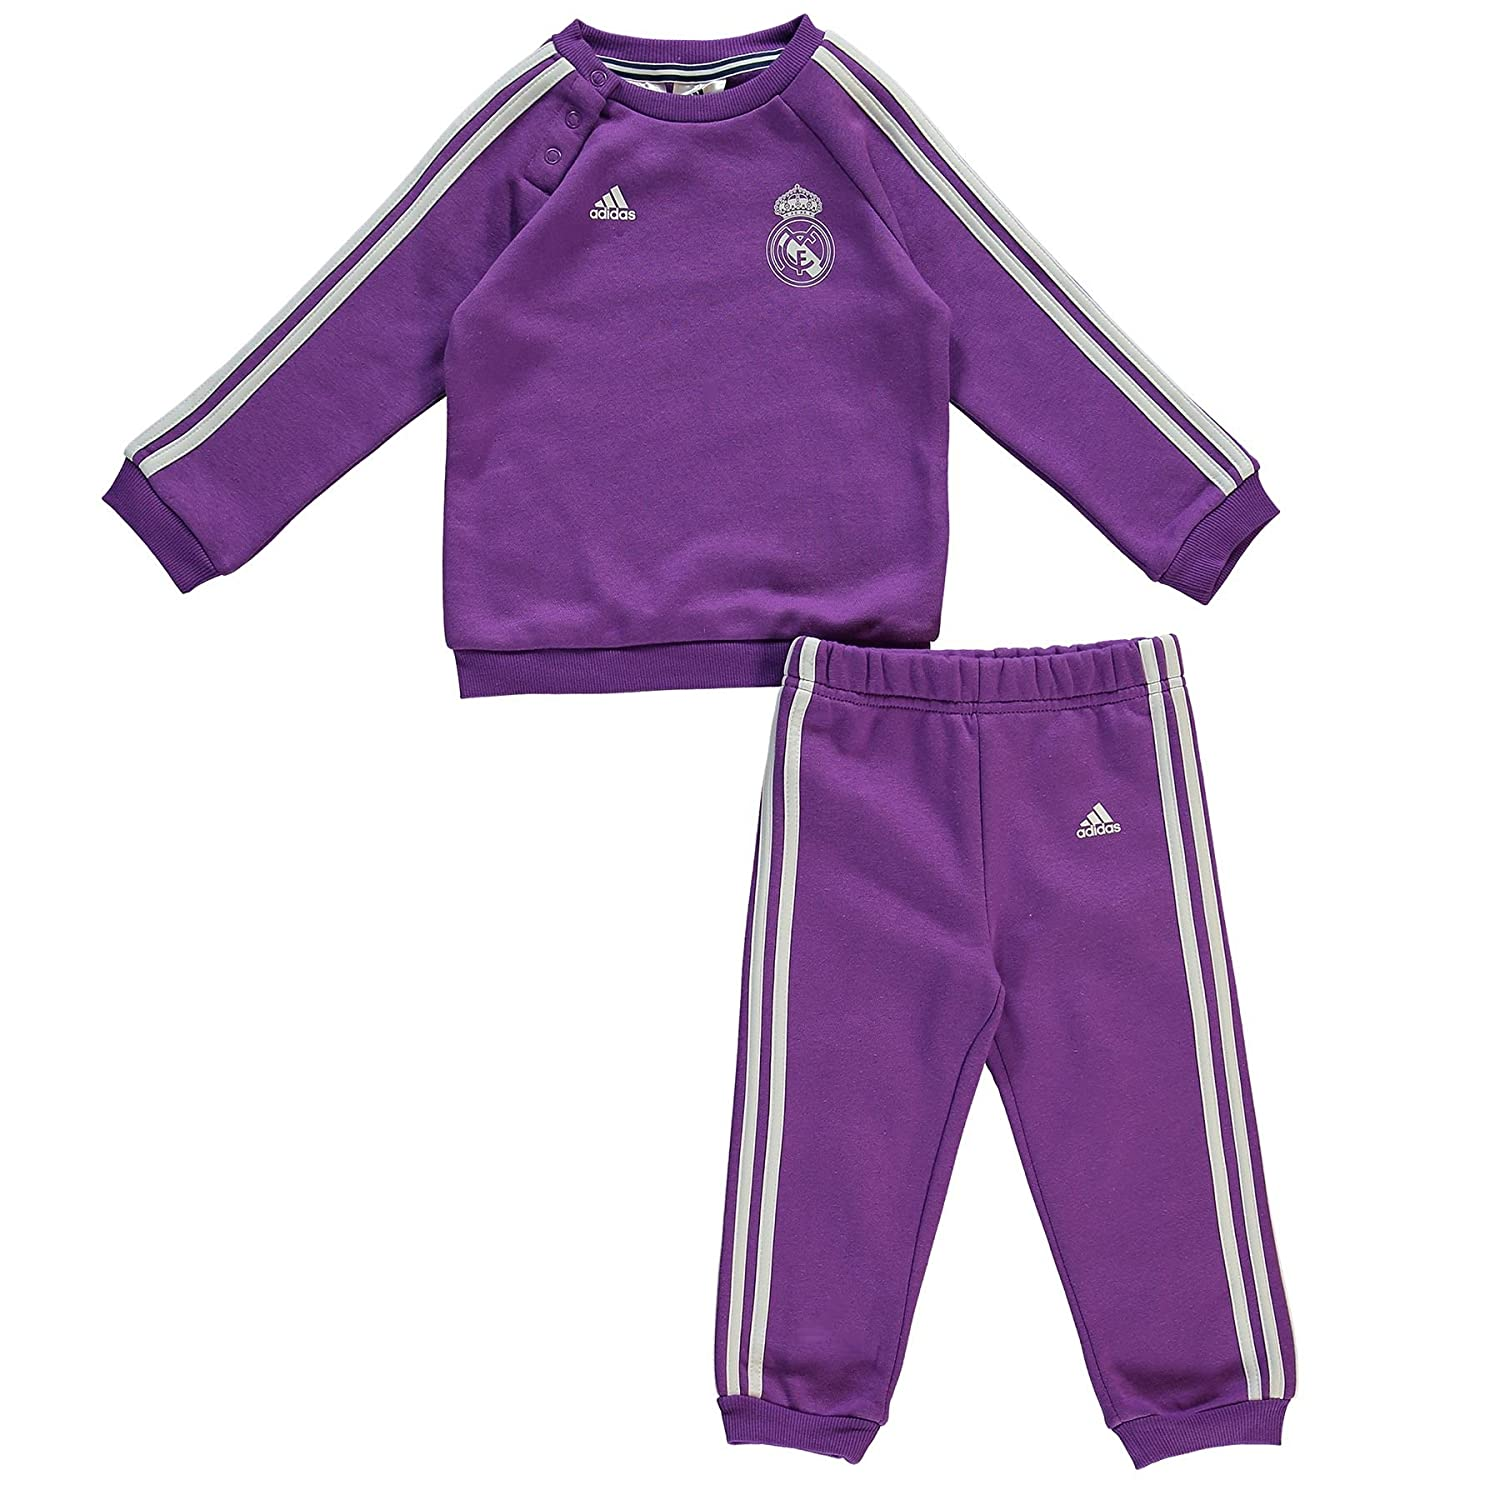 d4cbe0102 adidas Chandal Real Madrid 2016/17 Bebe: Amazon.co.uk: Sports & Outdoors